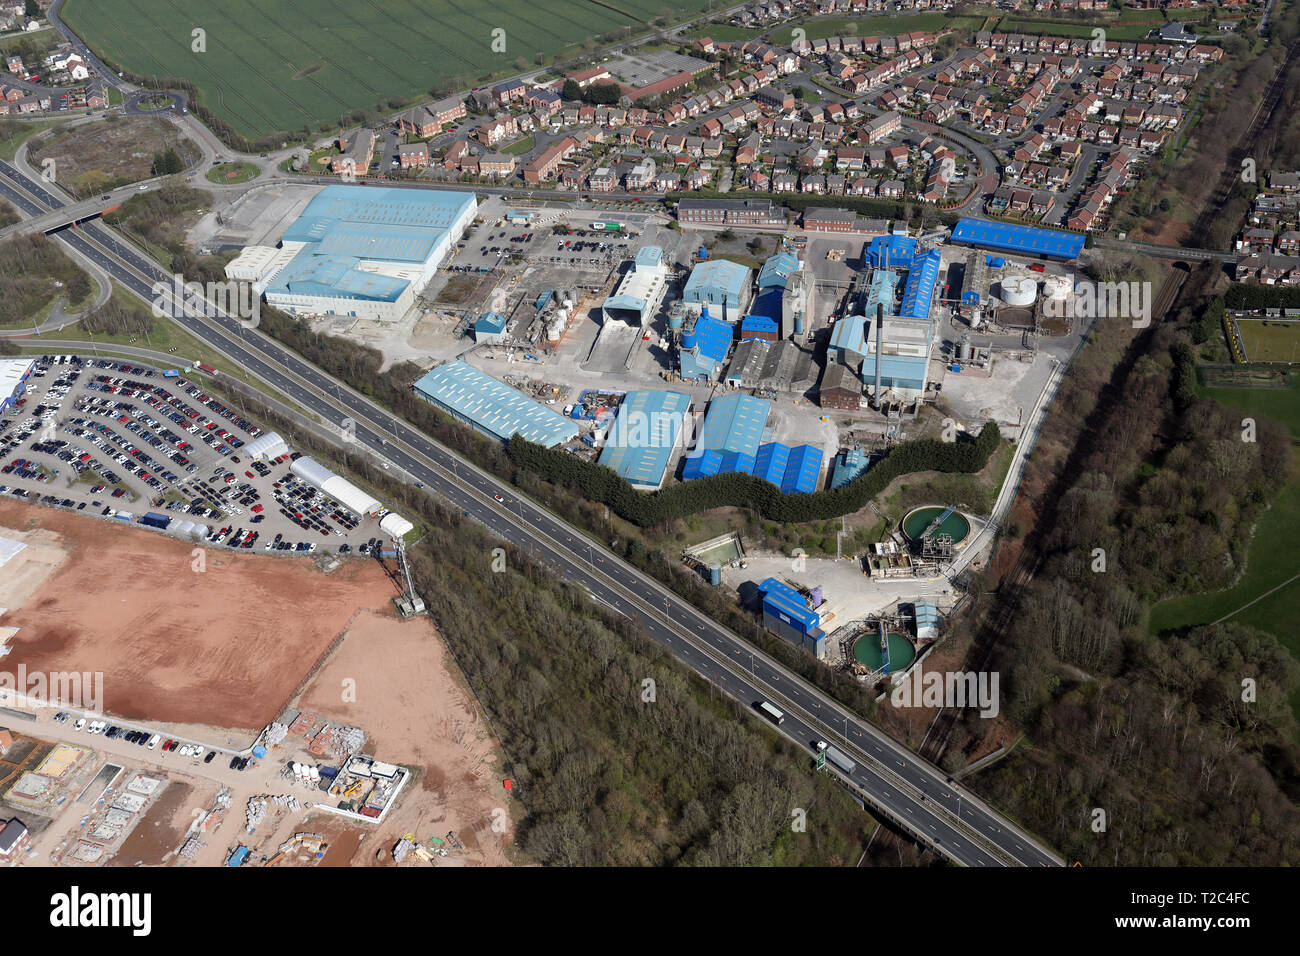 aerial view of the BYK Additives Ltd manufacturing plant at Widnes, Cheshire - Stock Image